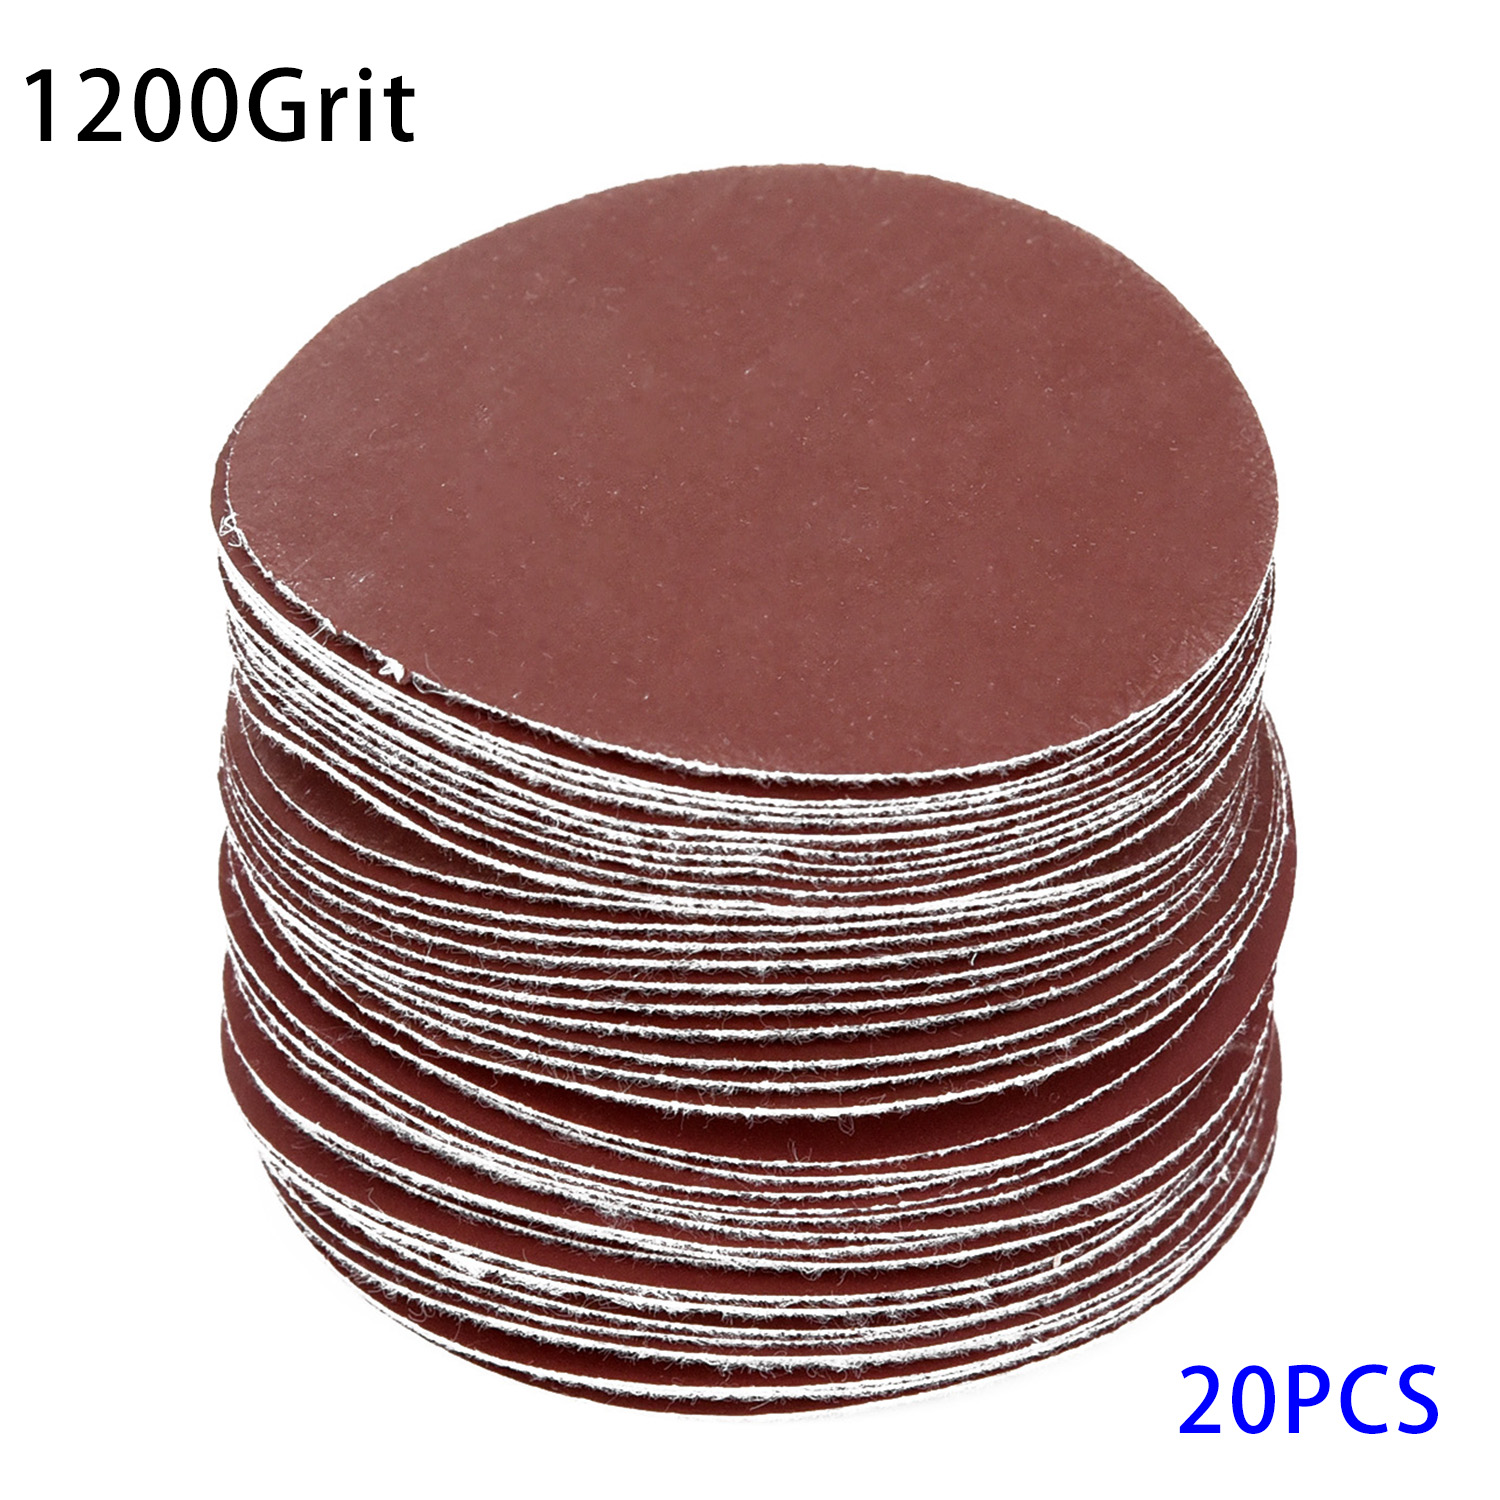 20pcs Polisher Sanding Discs Grinding Polishing Woodworking Furniture Artificial Stones Abrasive Sandpapers